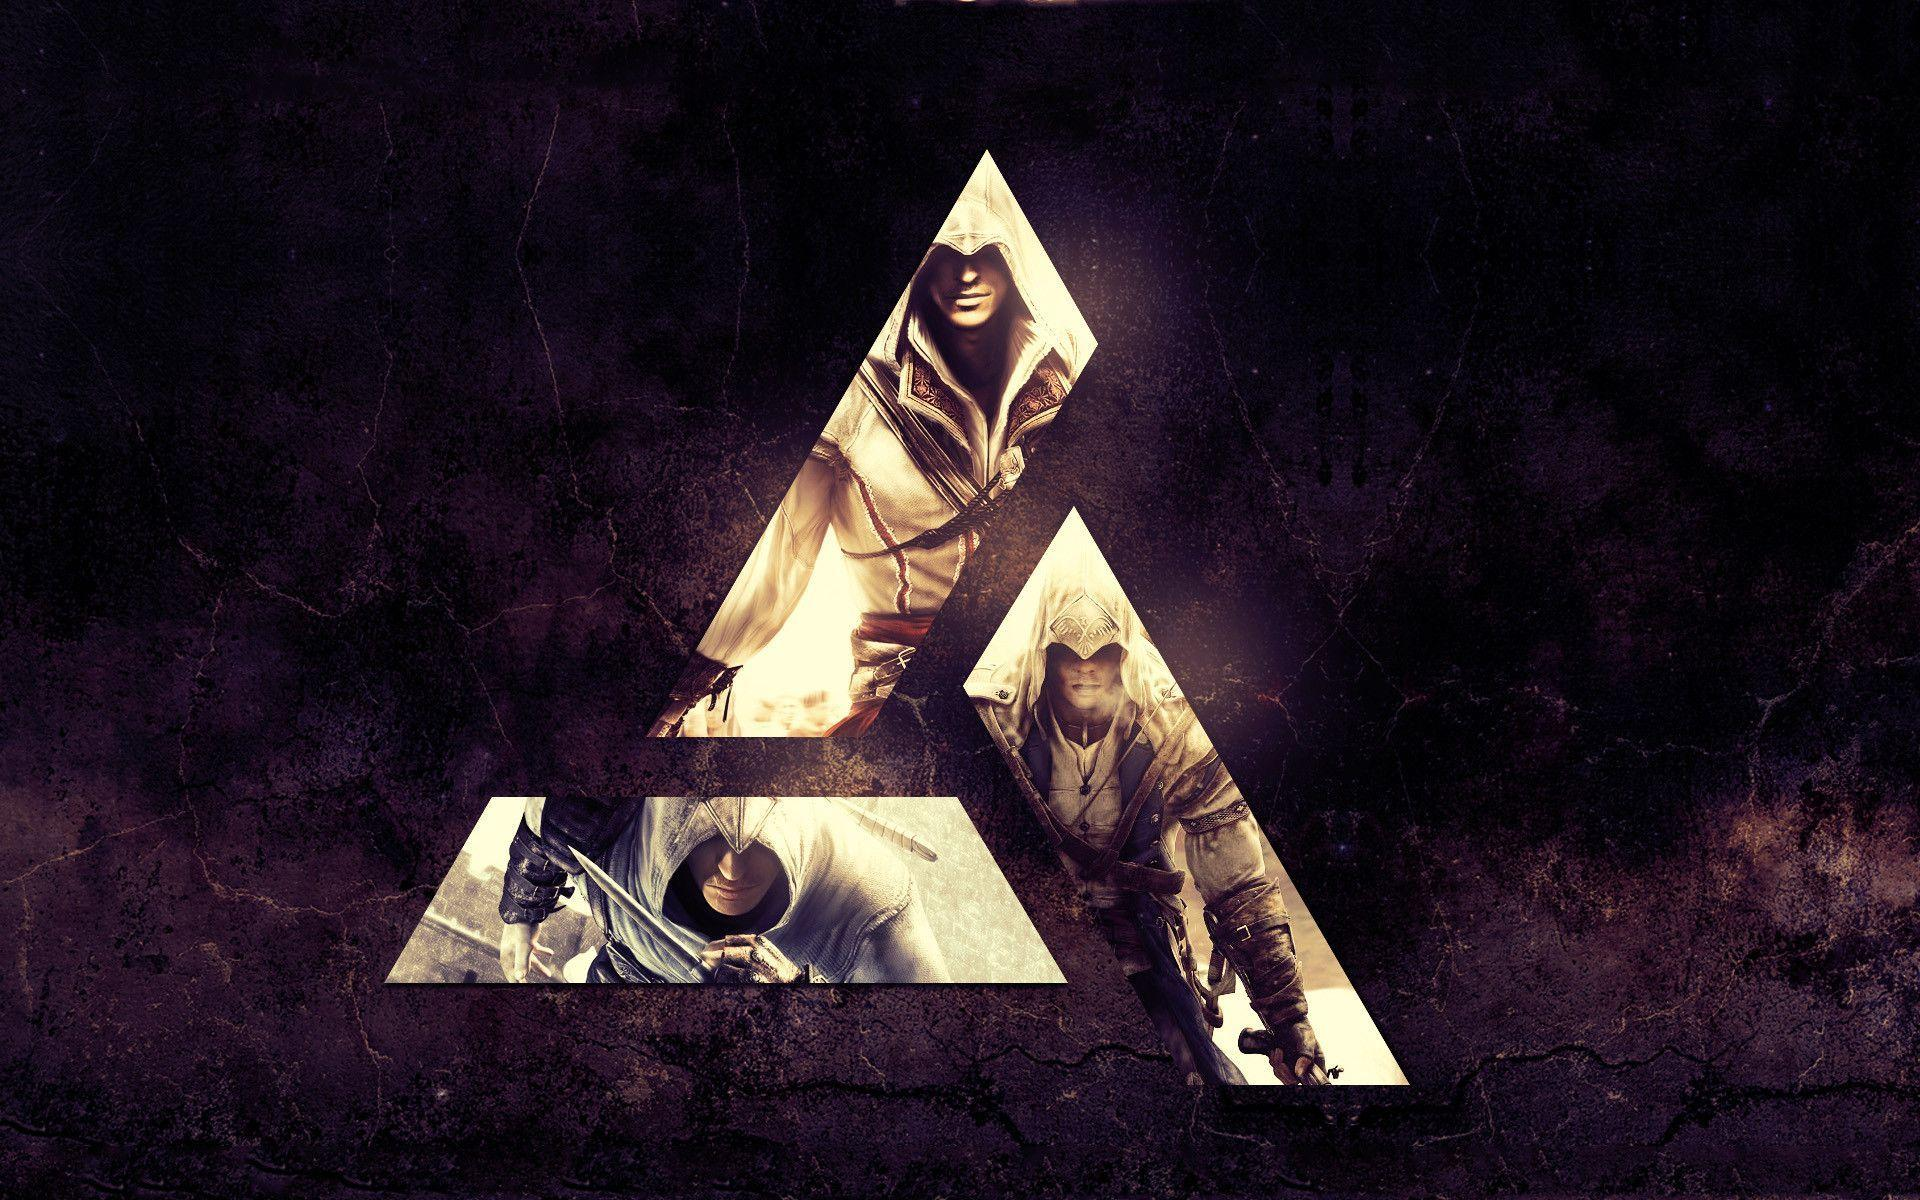 Assassin's Creed Wallpapers, Live Assassin's Creed Photos